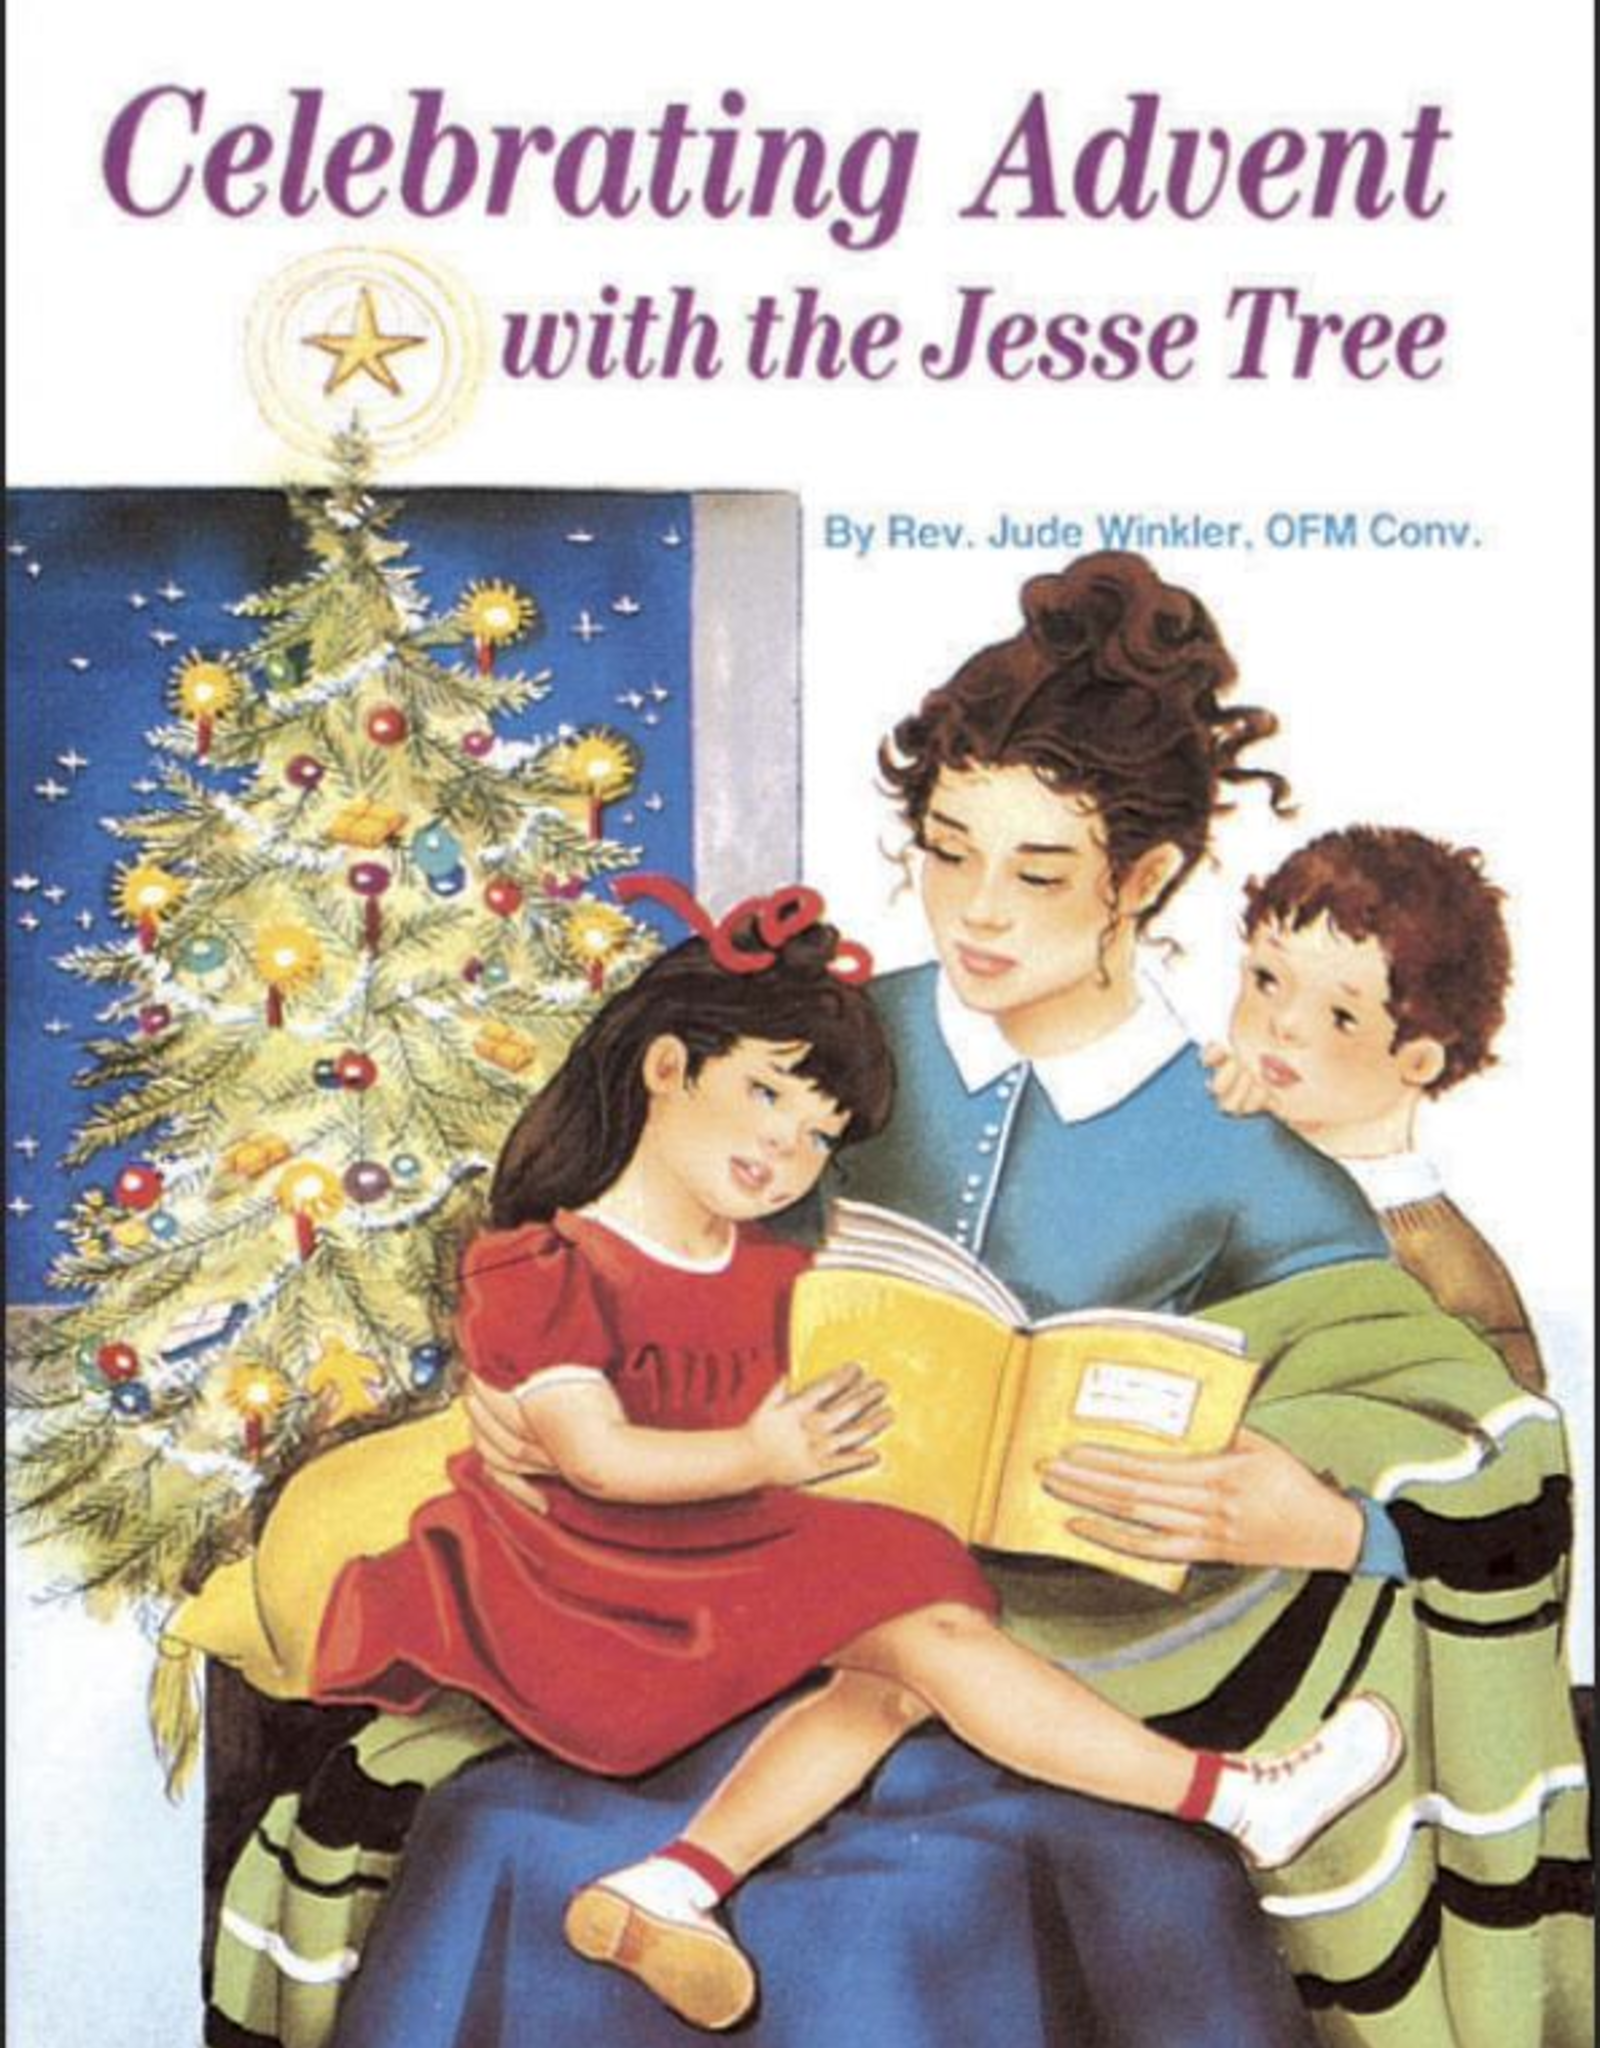 Catholic Book Publishing Celebrating Advent with the Jesse Tree, by Rev. Jude Walker